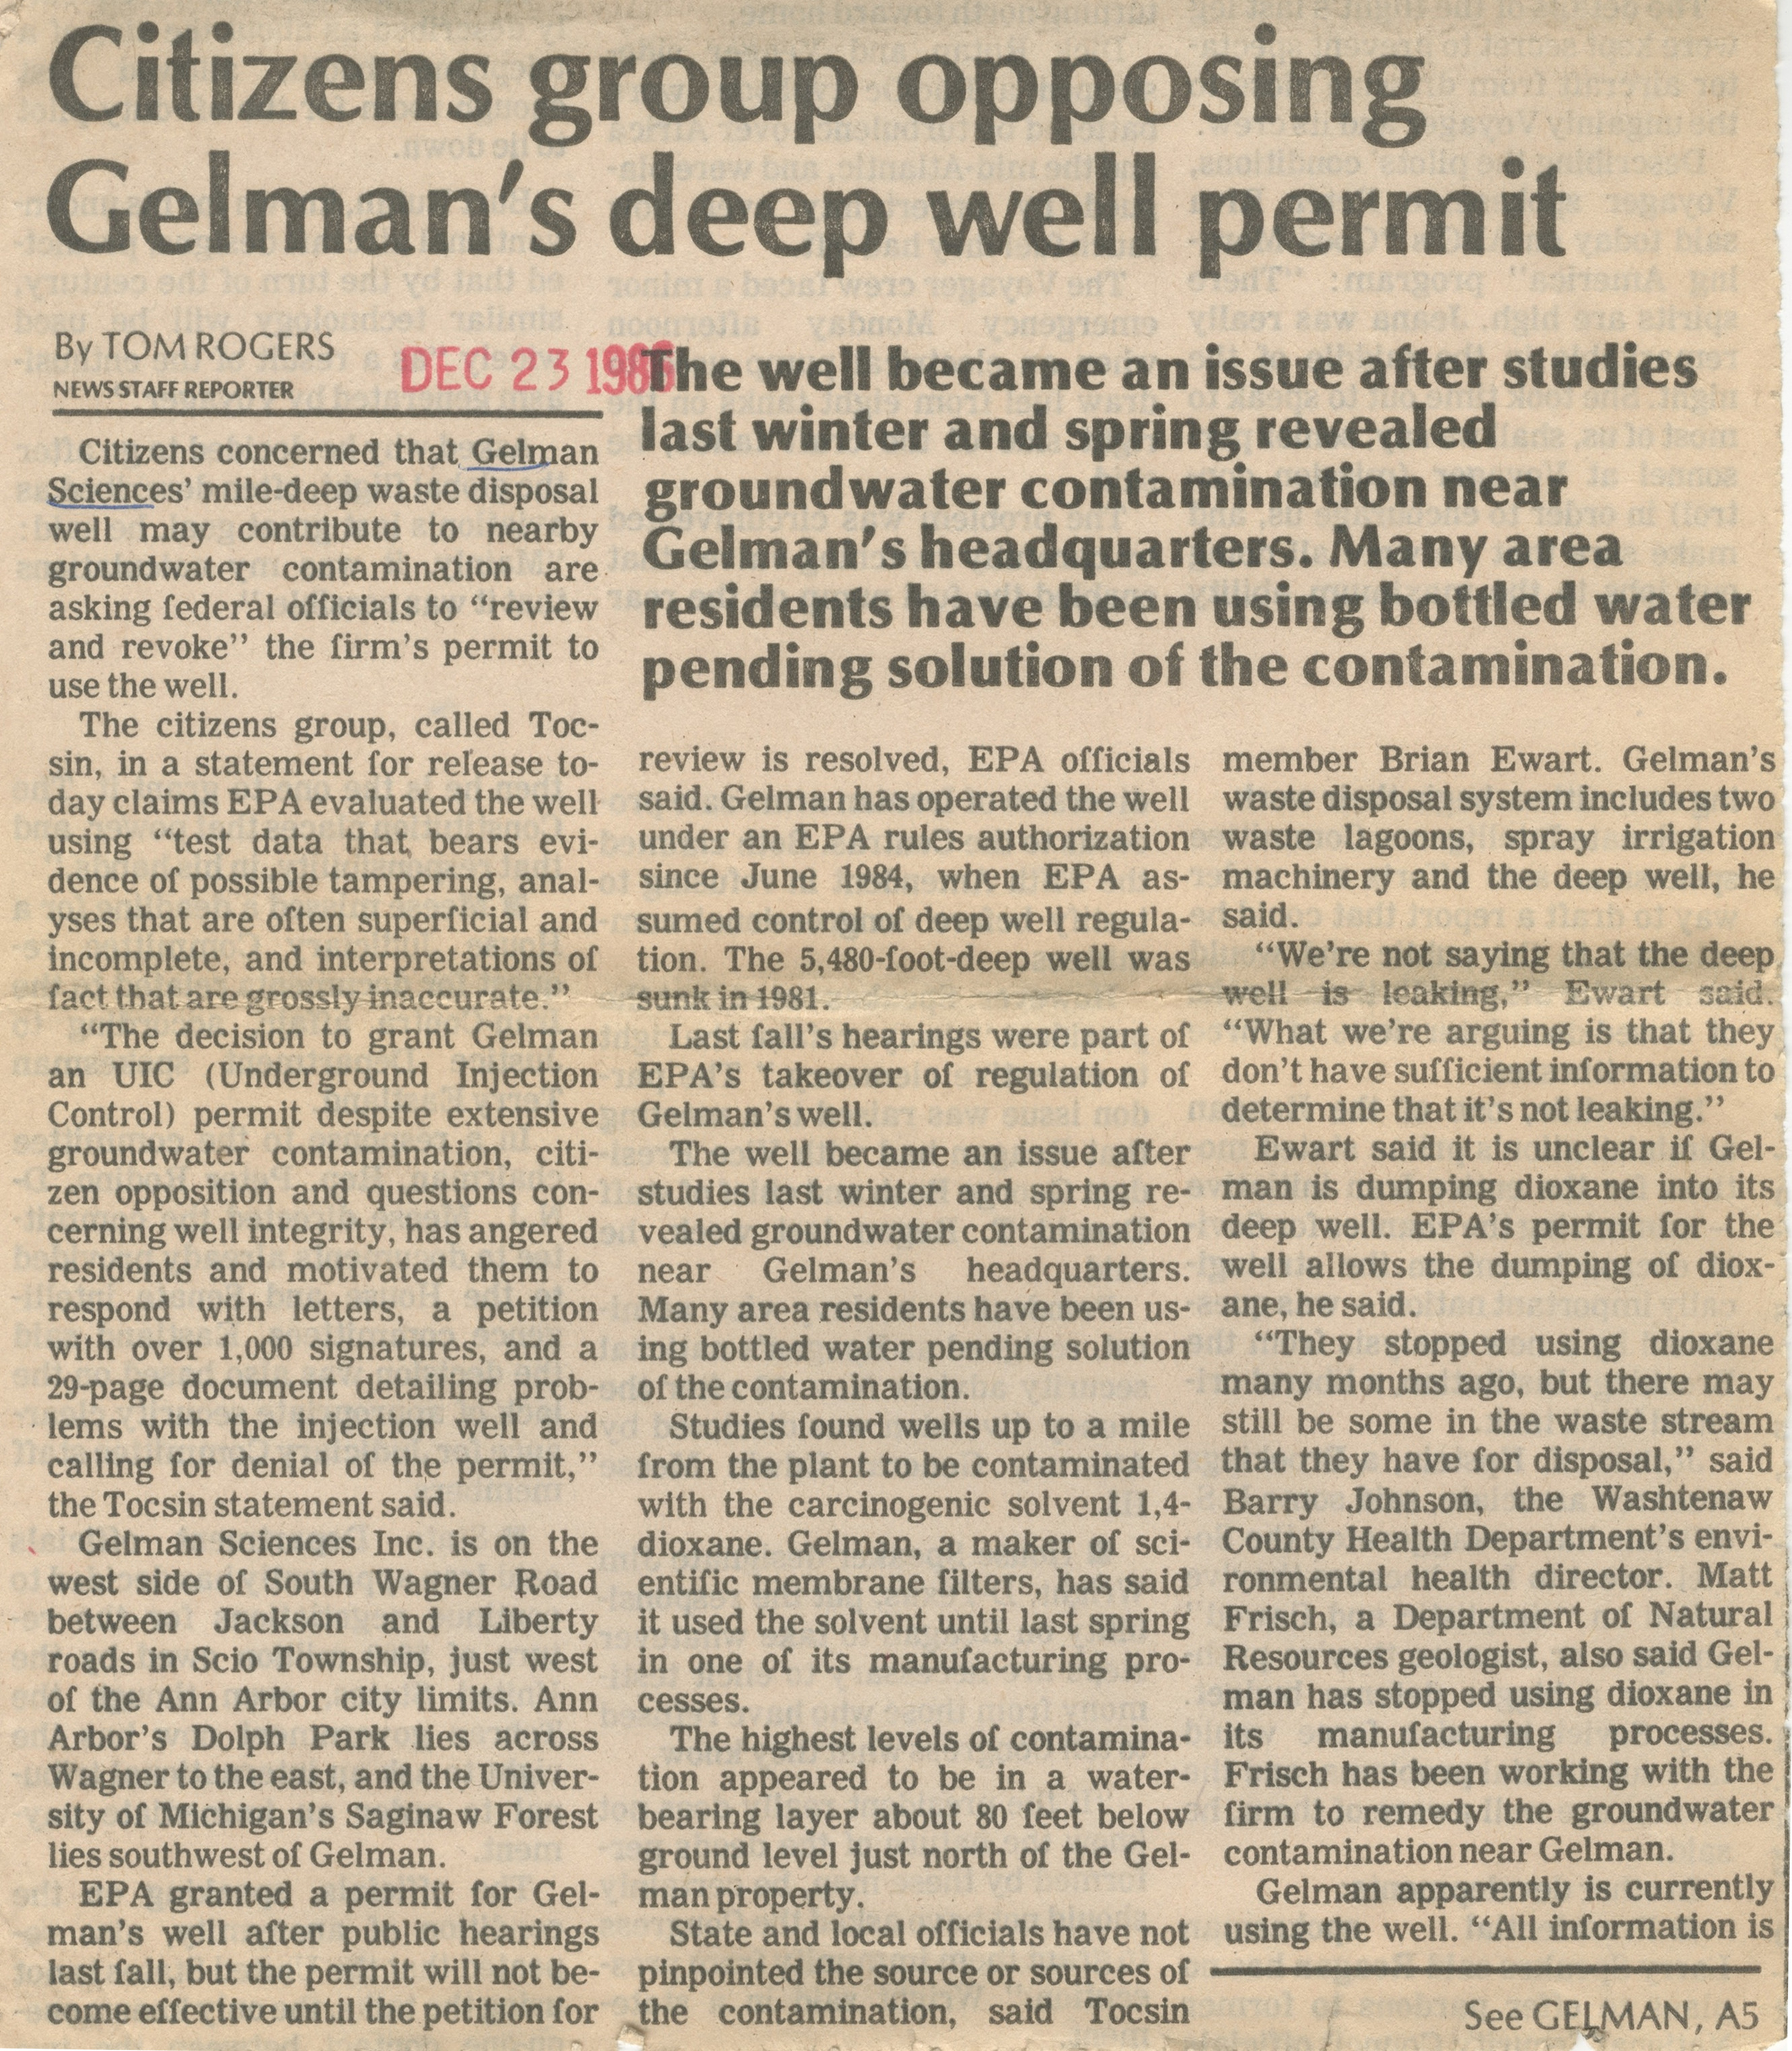 Citizens Group Opposing Gelman's Deep Well Permit image